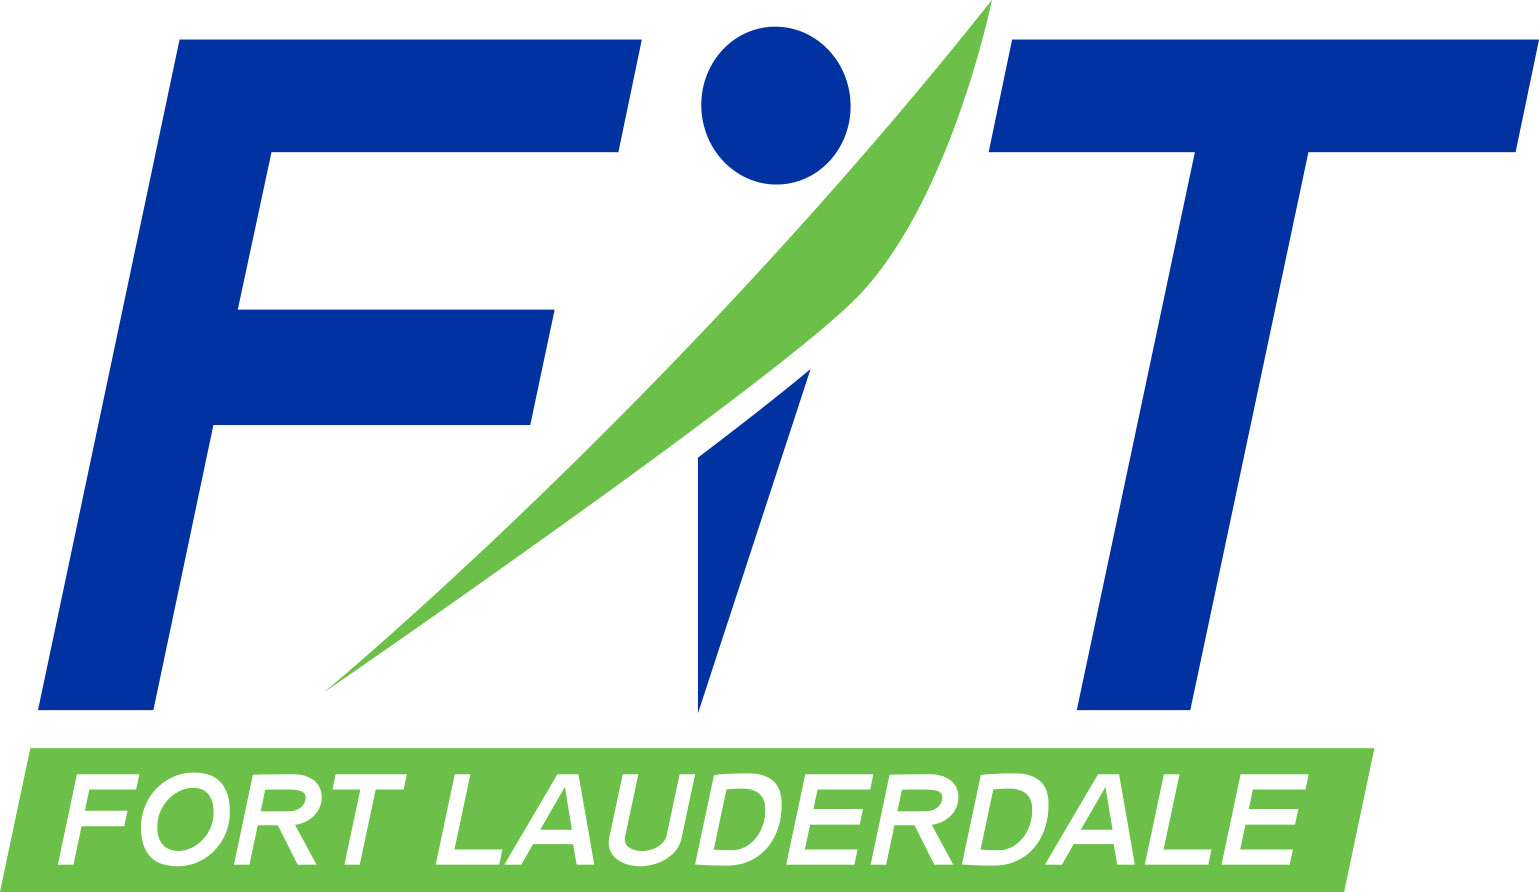 Fit Ford Lauderdale 5K - 5/11/19